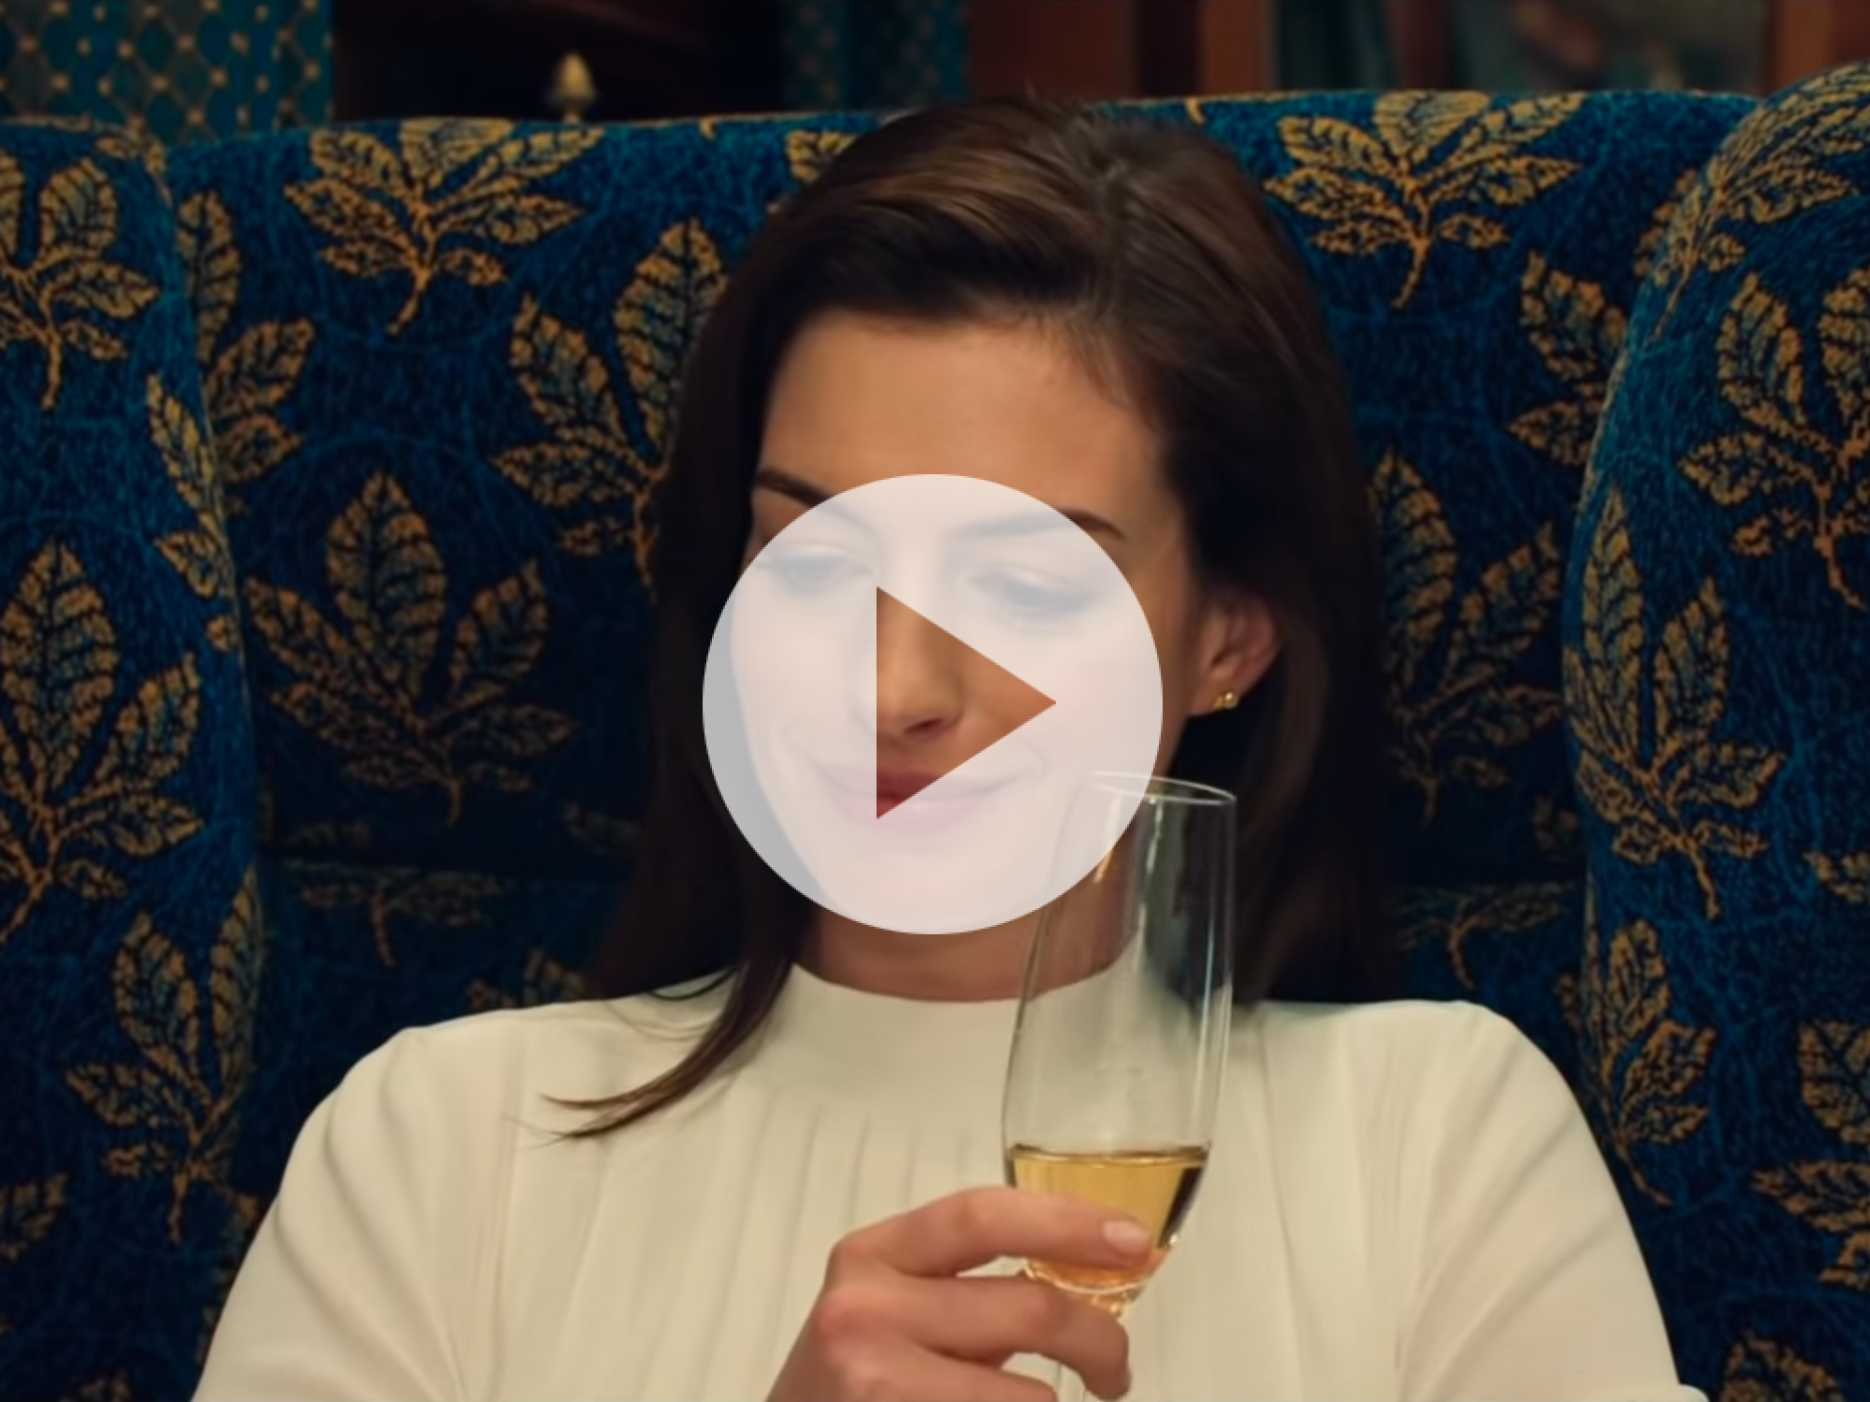 Watch: Trailer for Anne Hathaway-Starring 'The Hustle' Drops